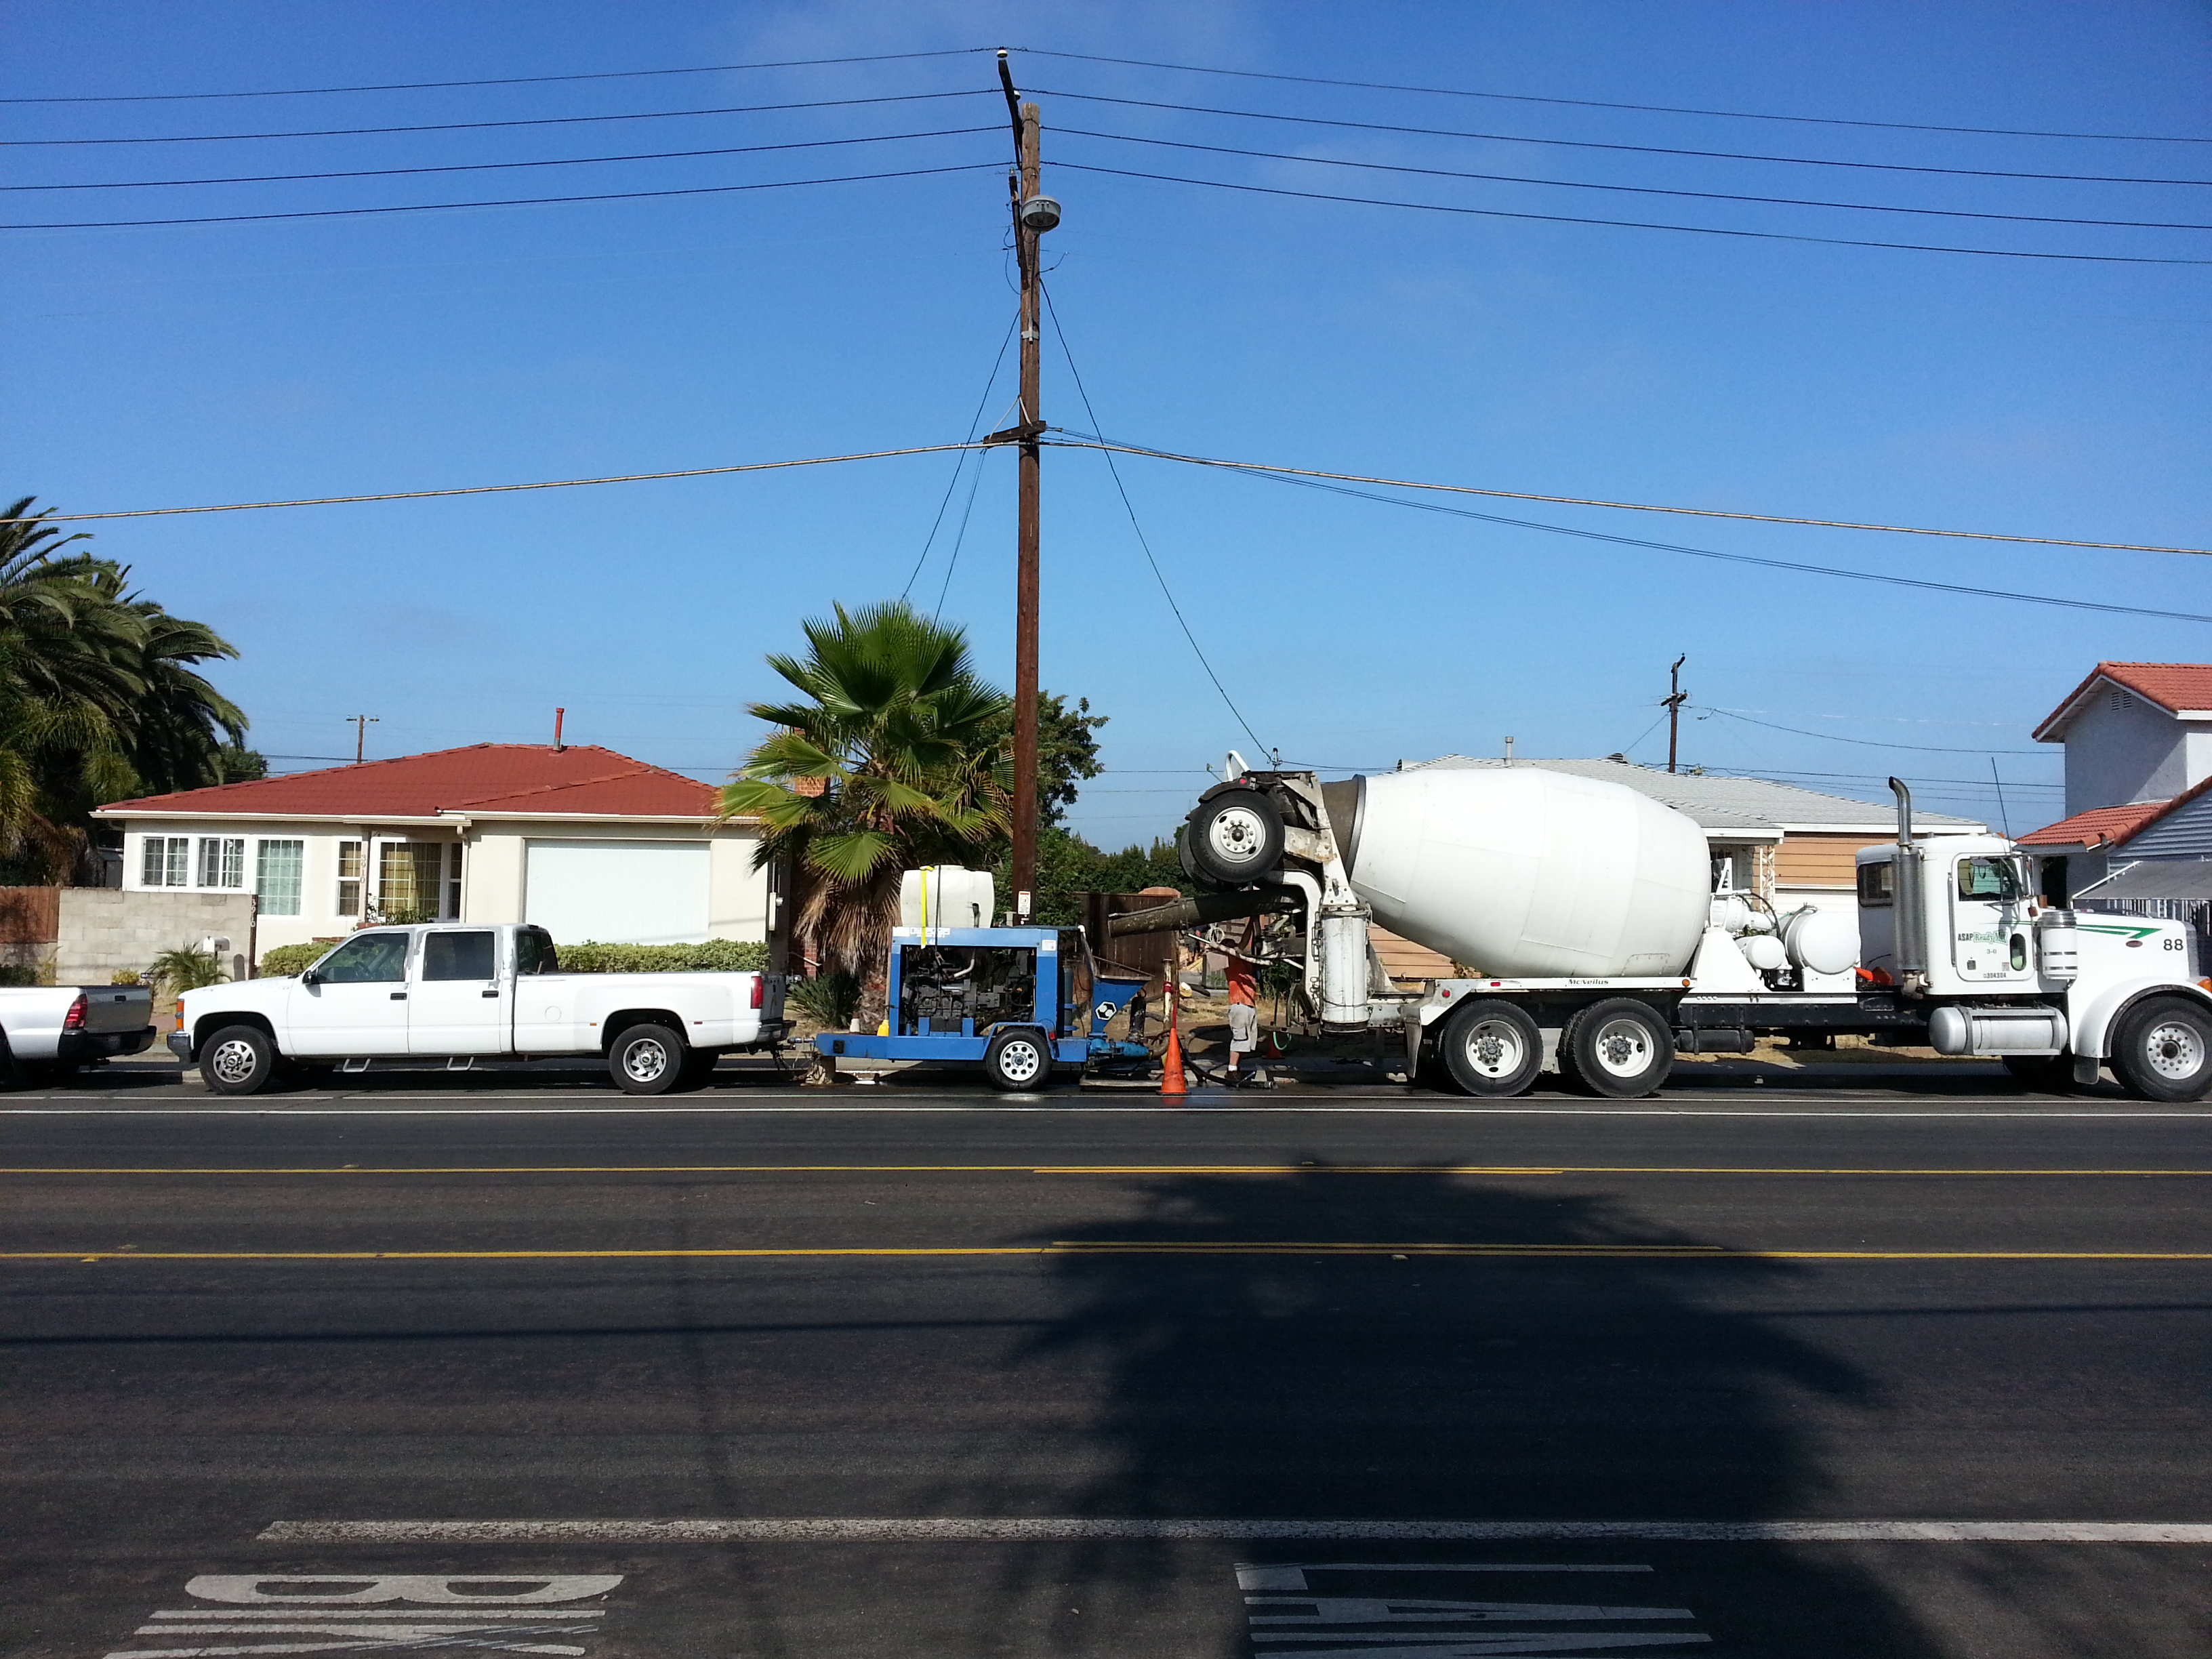 Concrete Mixer Truck and Pump